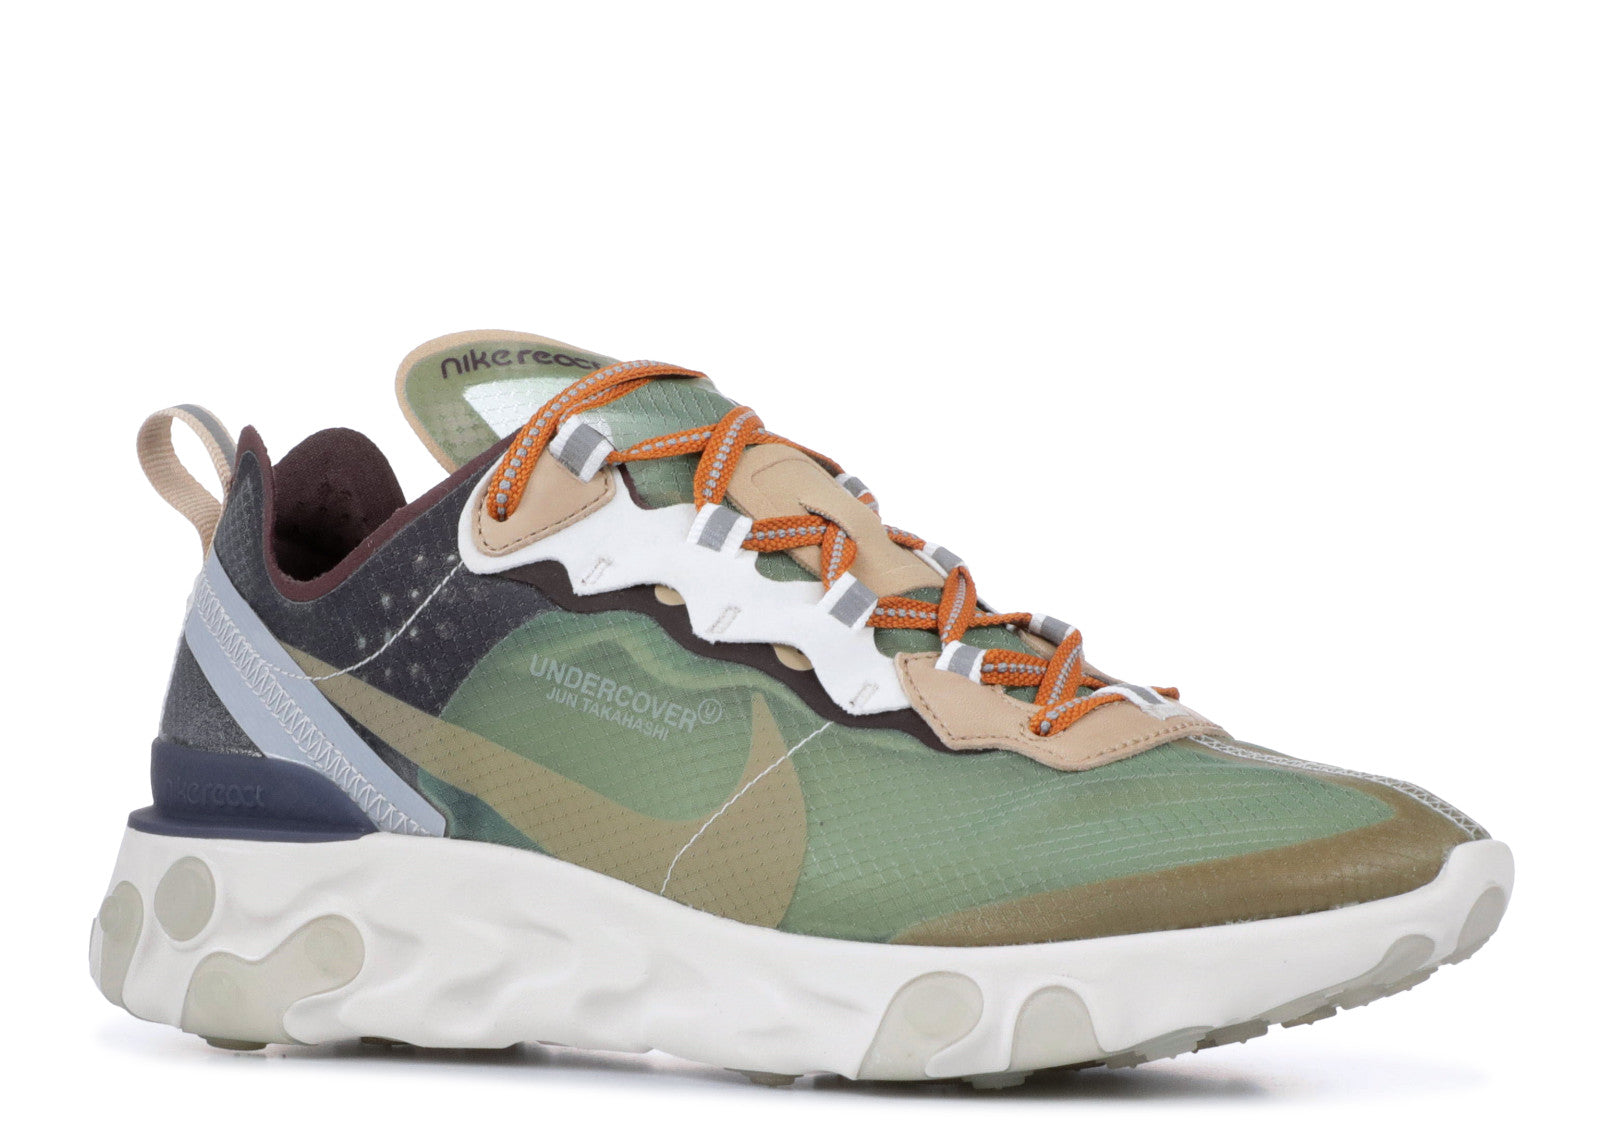 Undercover X Nike React Element 87 'Green Mist'